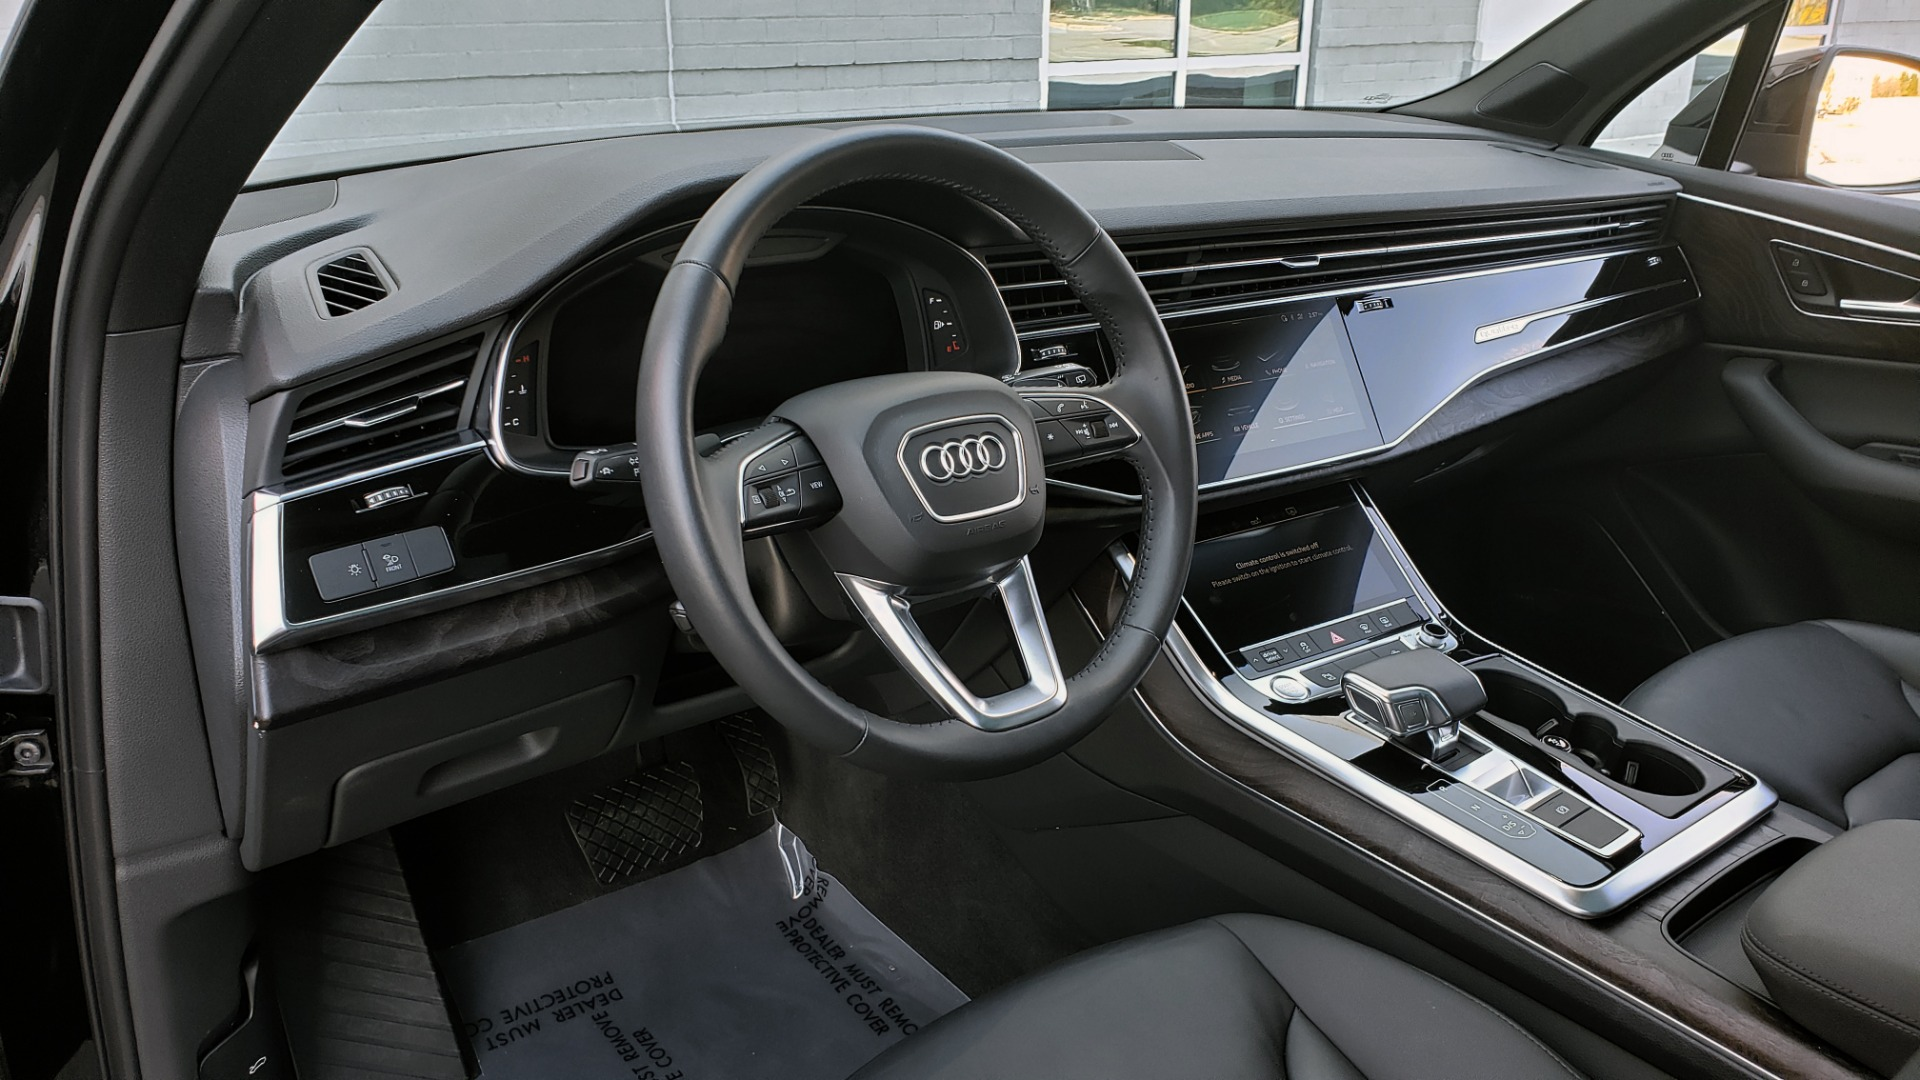 Used 2020 Audi Q7 PREMIUM PLUS / NAV / SUNROOF / 3-ROW / REARVIEW for sale $50,695 at Formula Imports in Charlotte NC 28227 39